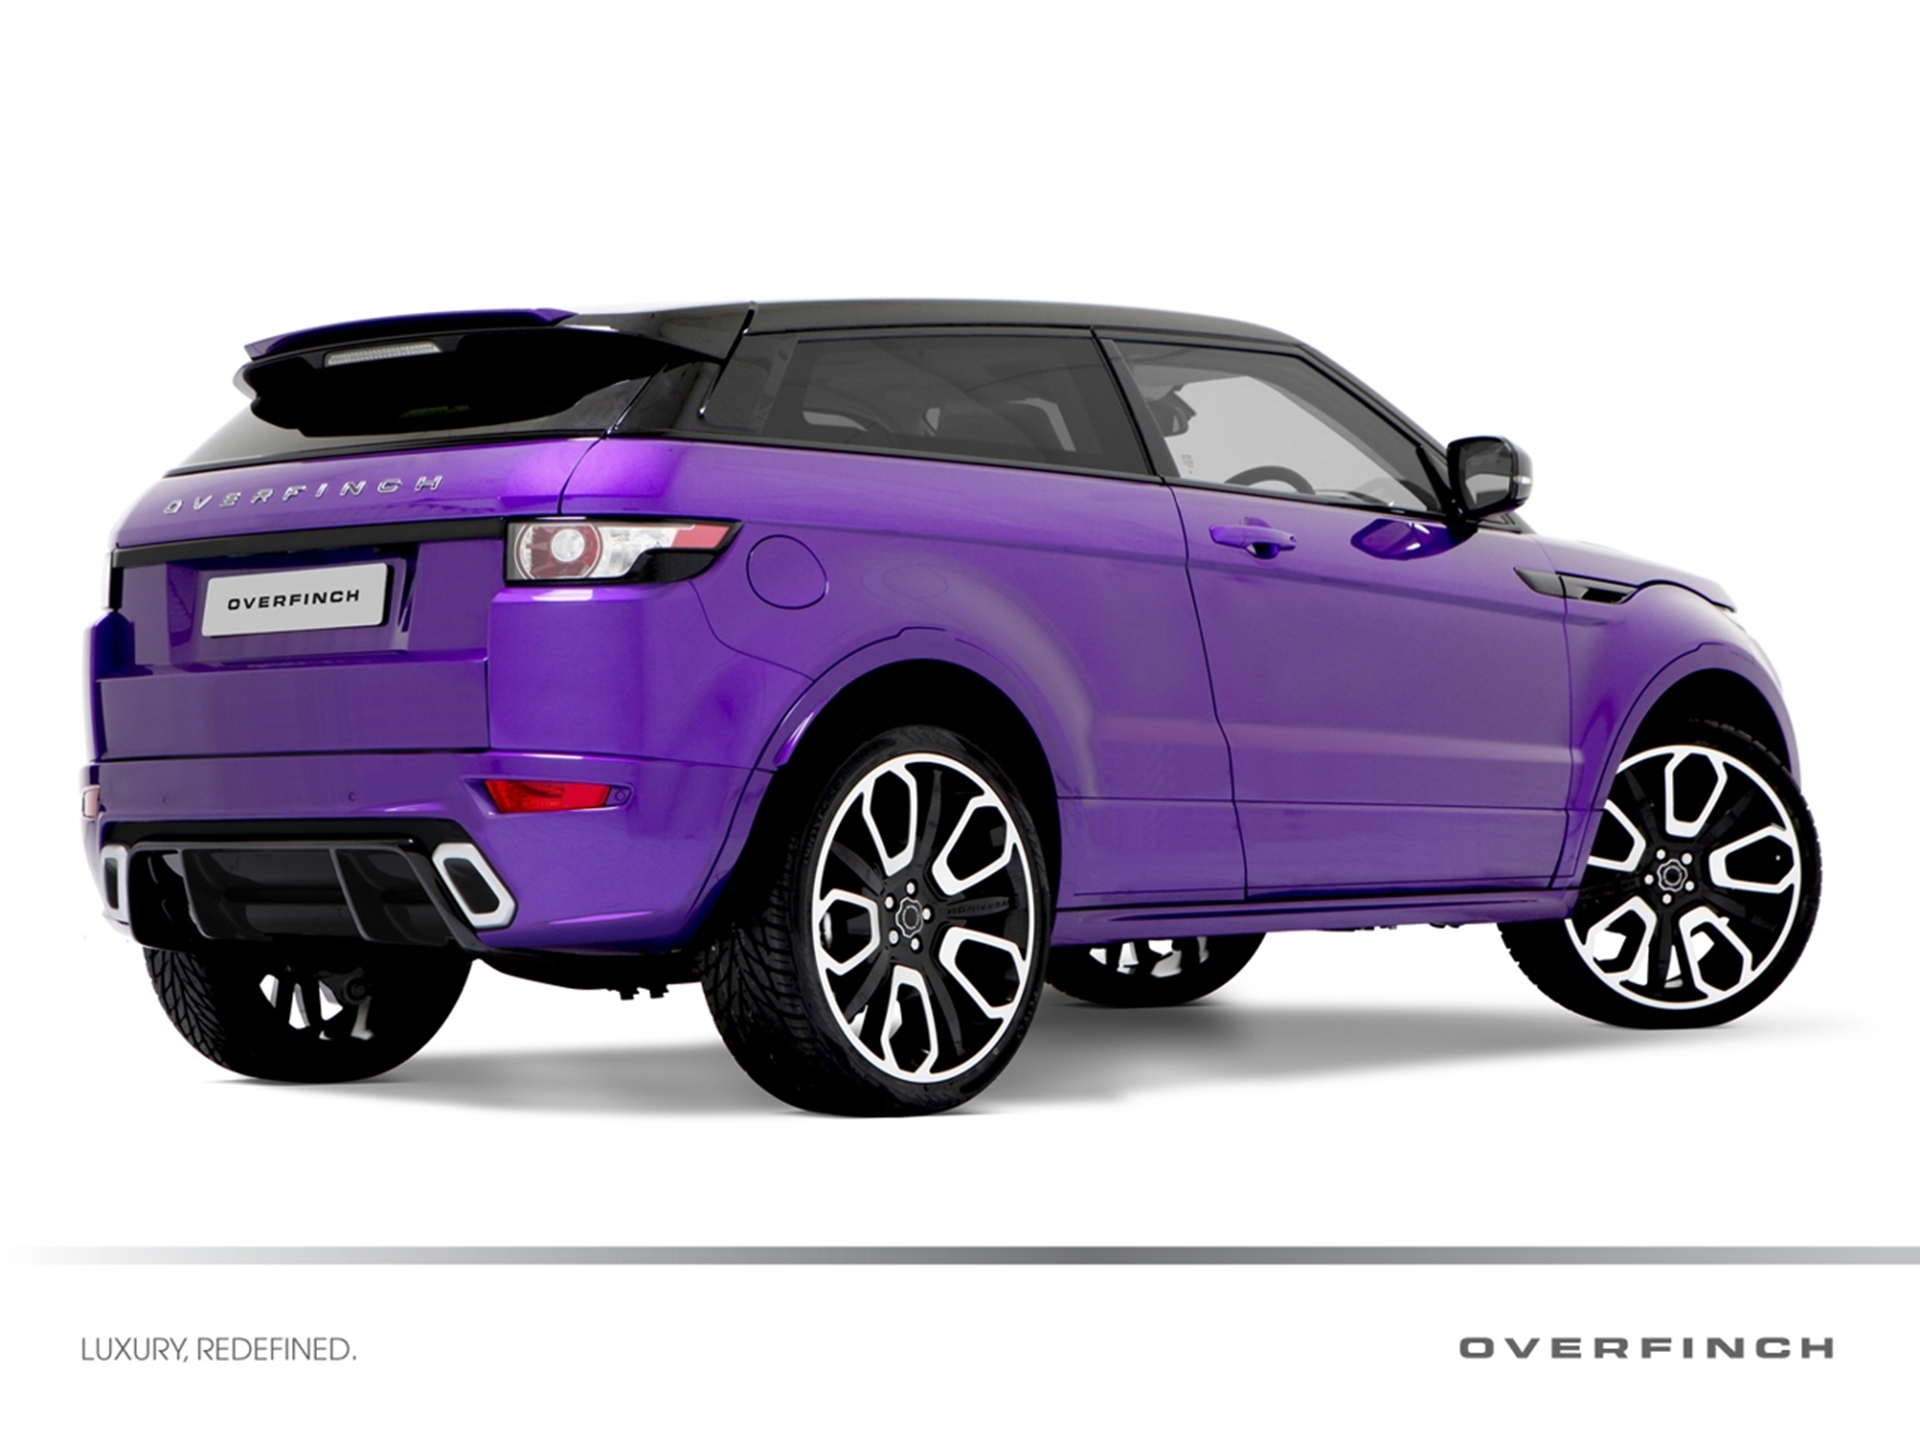 Limited Edition Overfinch Range Rover Evoque 2012 GTS